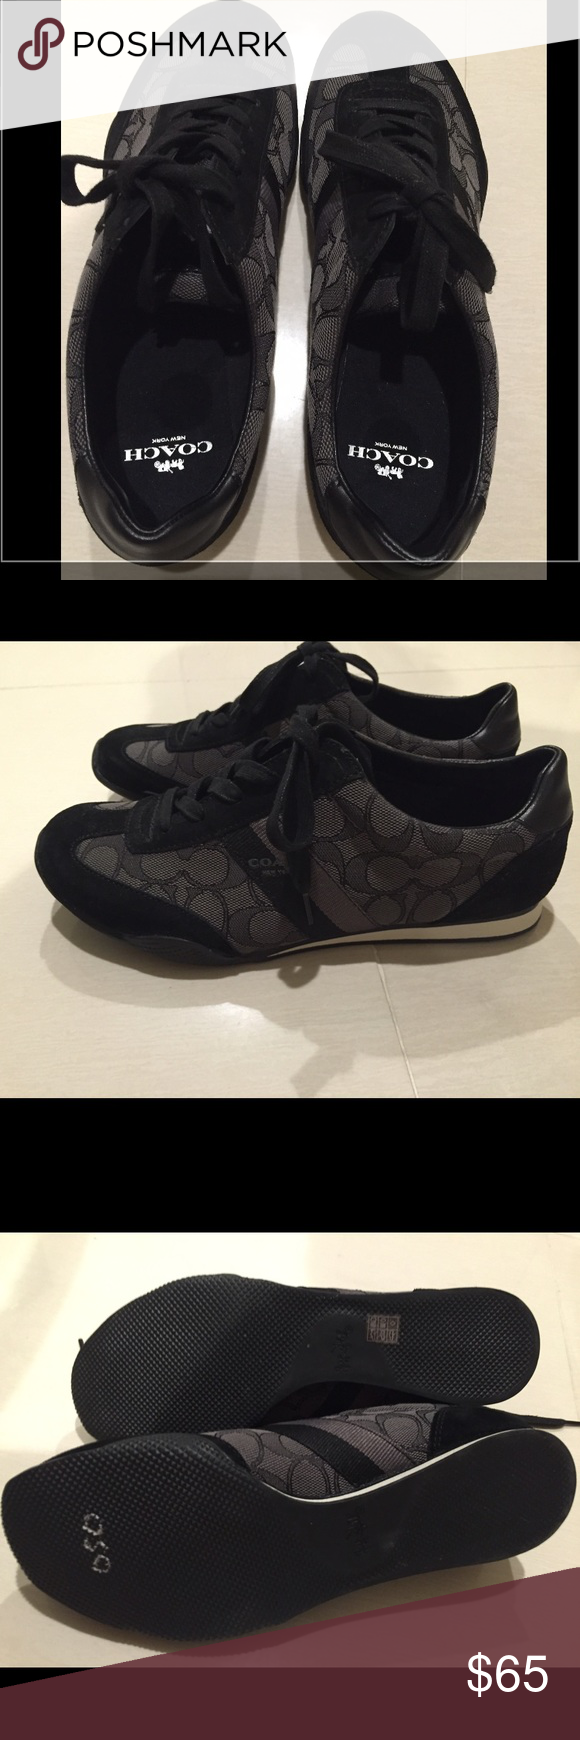 Coach Sneakers Size 8.5 Coach Sneakers. New without tags or box. Size 8.5. Coach Shoes Sneakers